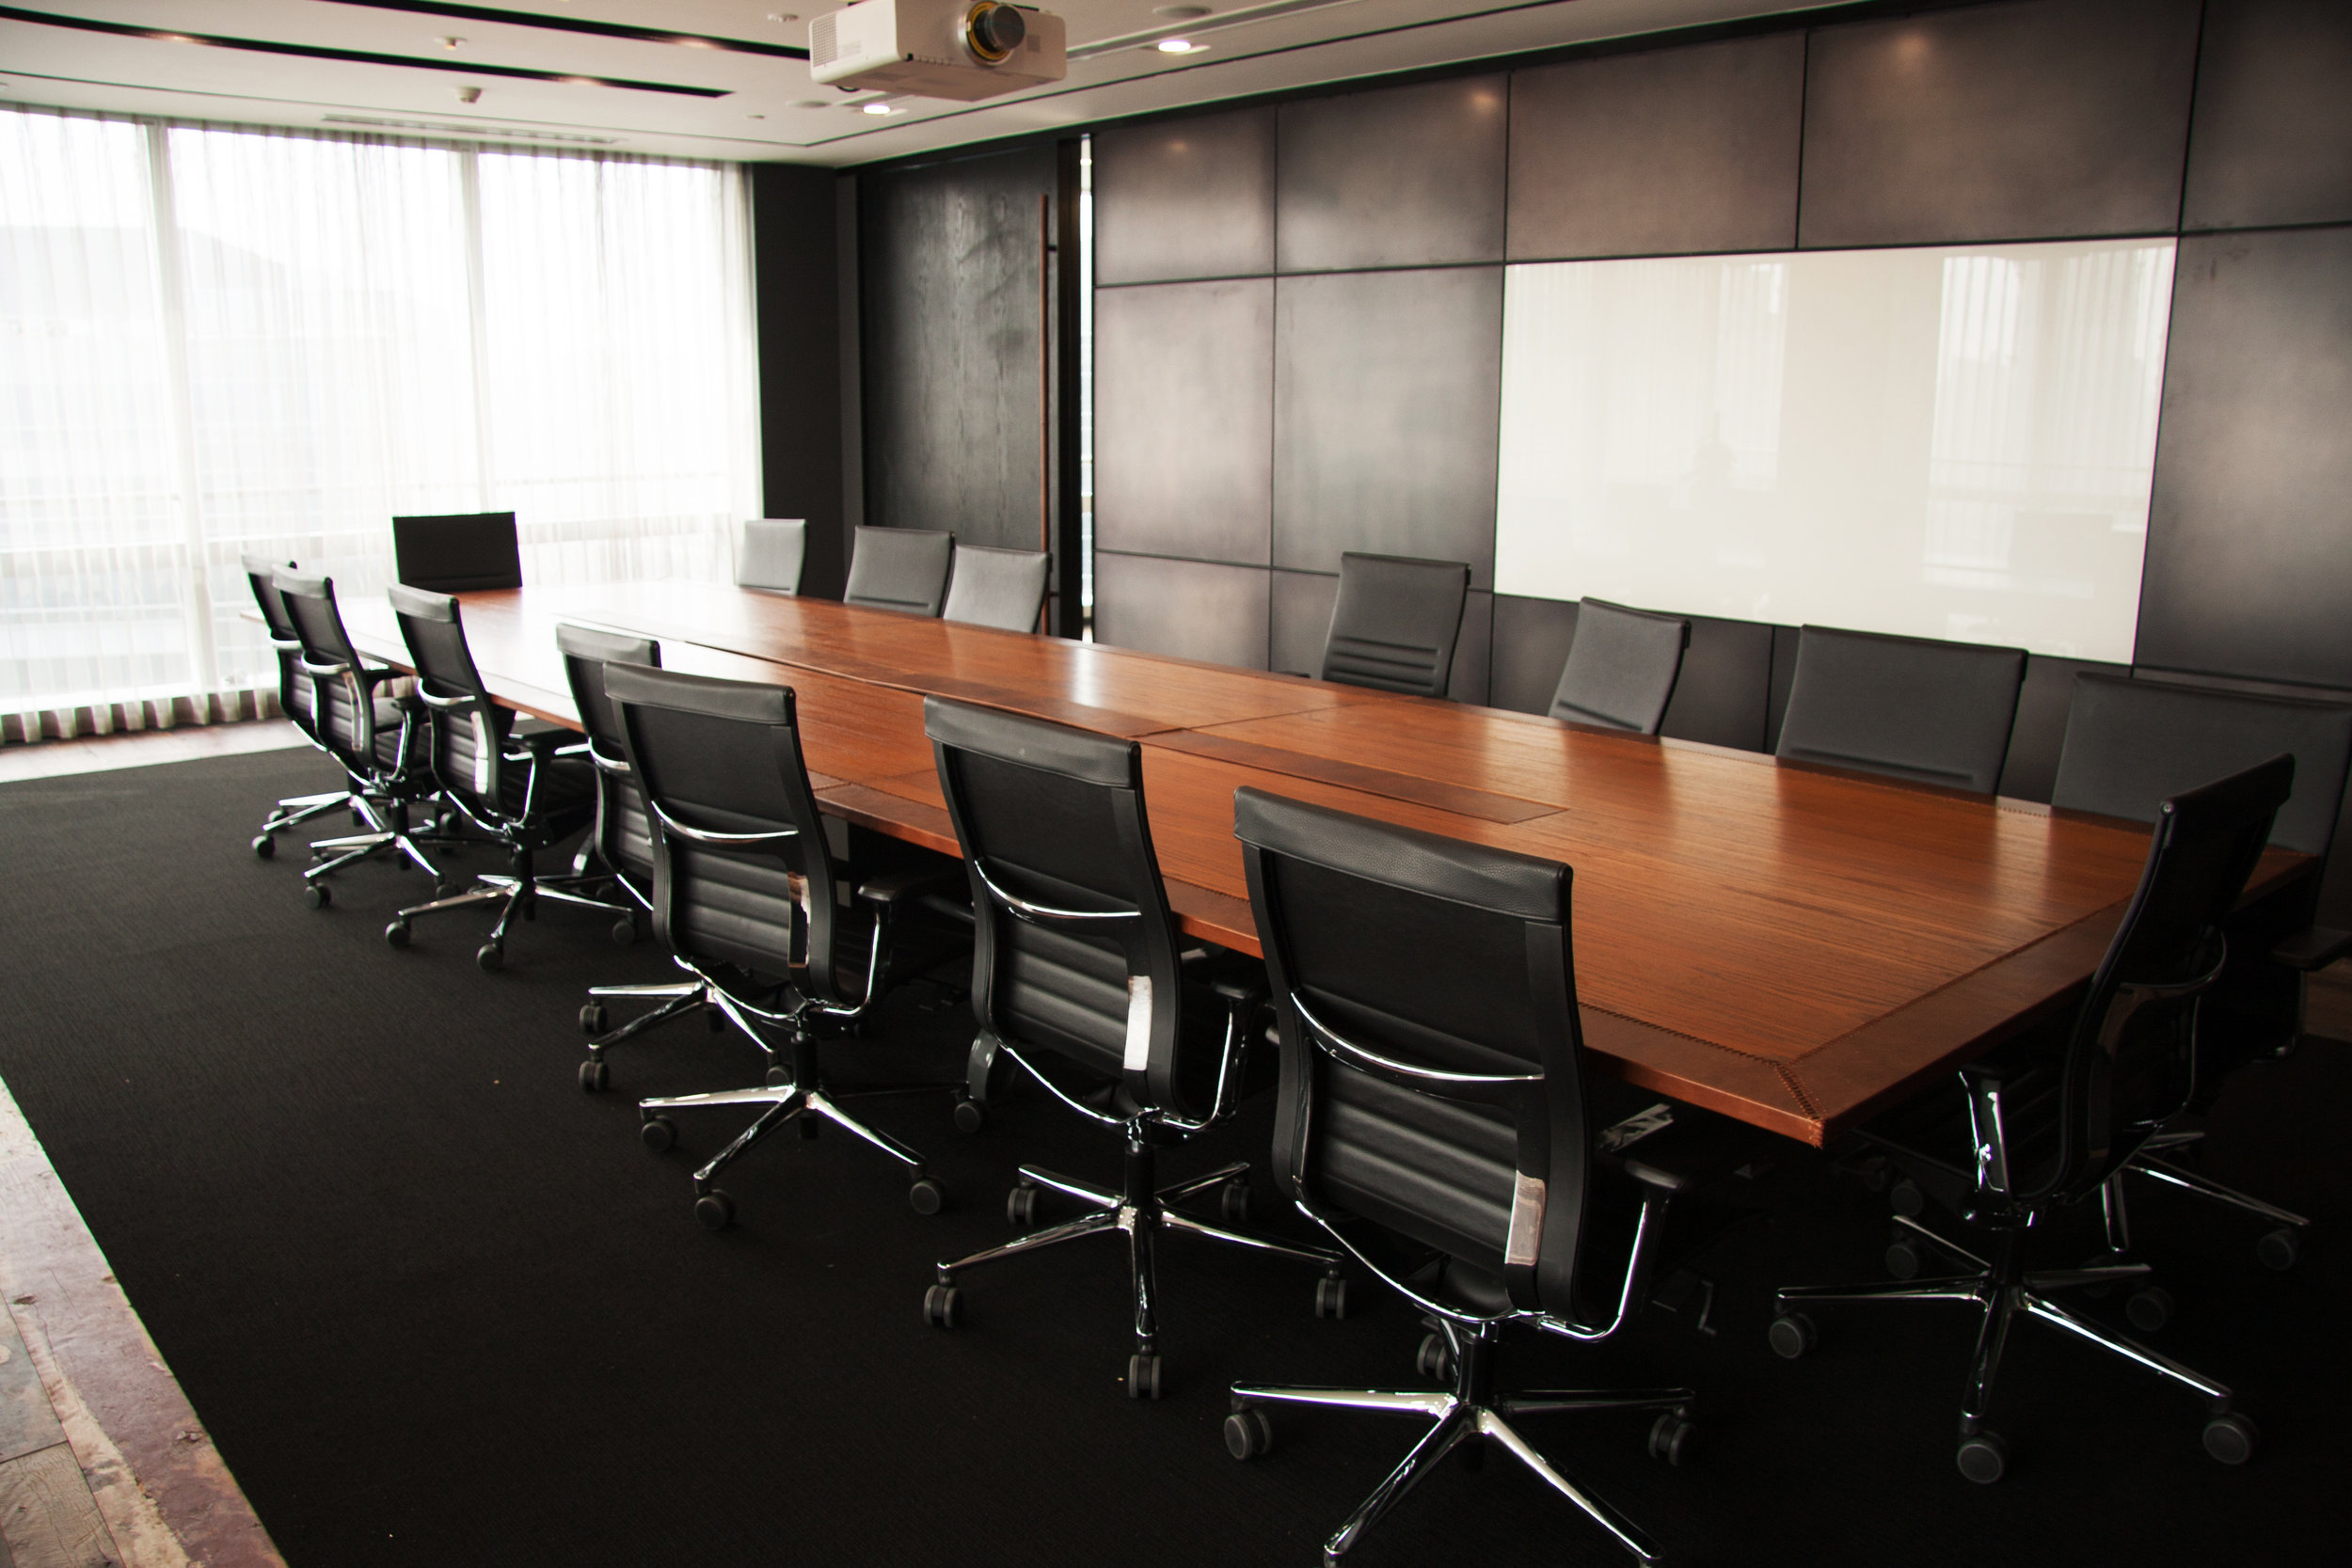 Board fundraising was one item on the agenda. photo: August_0802 /shutterstock